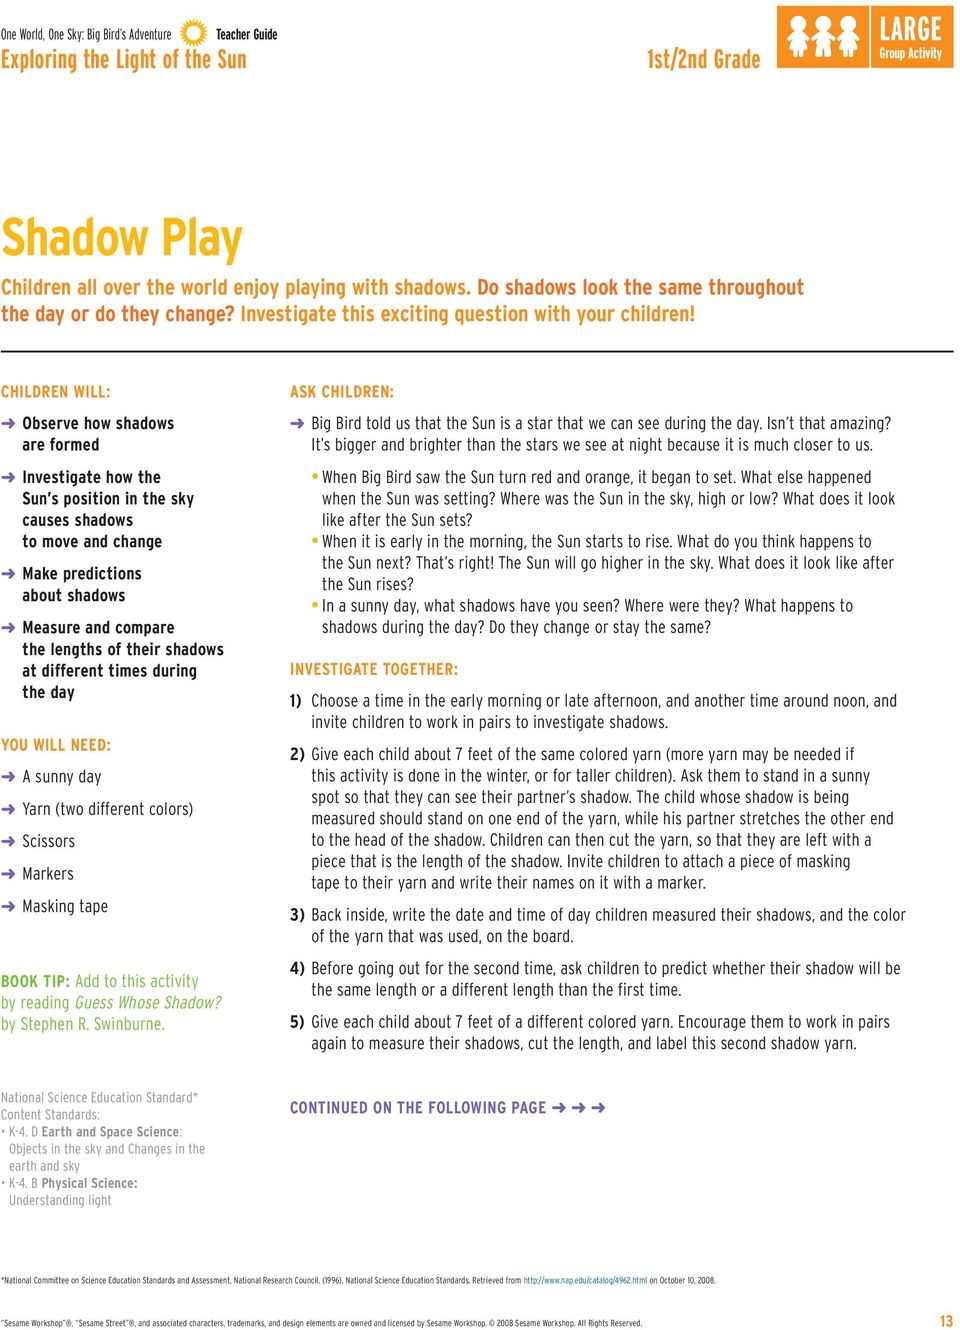 CHILDREN WILL: Observe how shadows are formed Investigate how the Sun s position in the sky causes shadows to move and change Make predictions about shadows Measure and compare the lengths of their